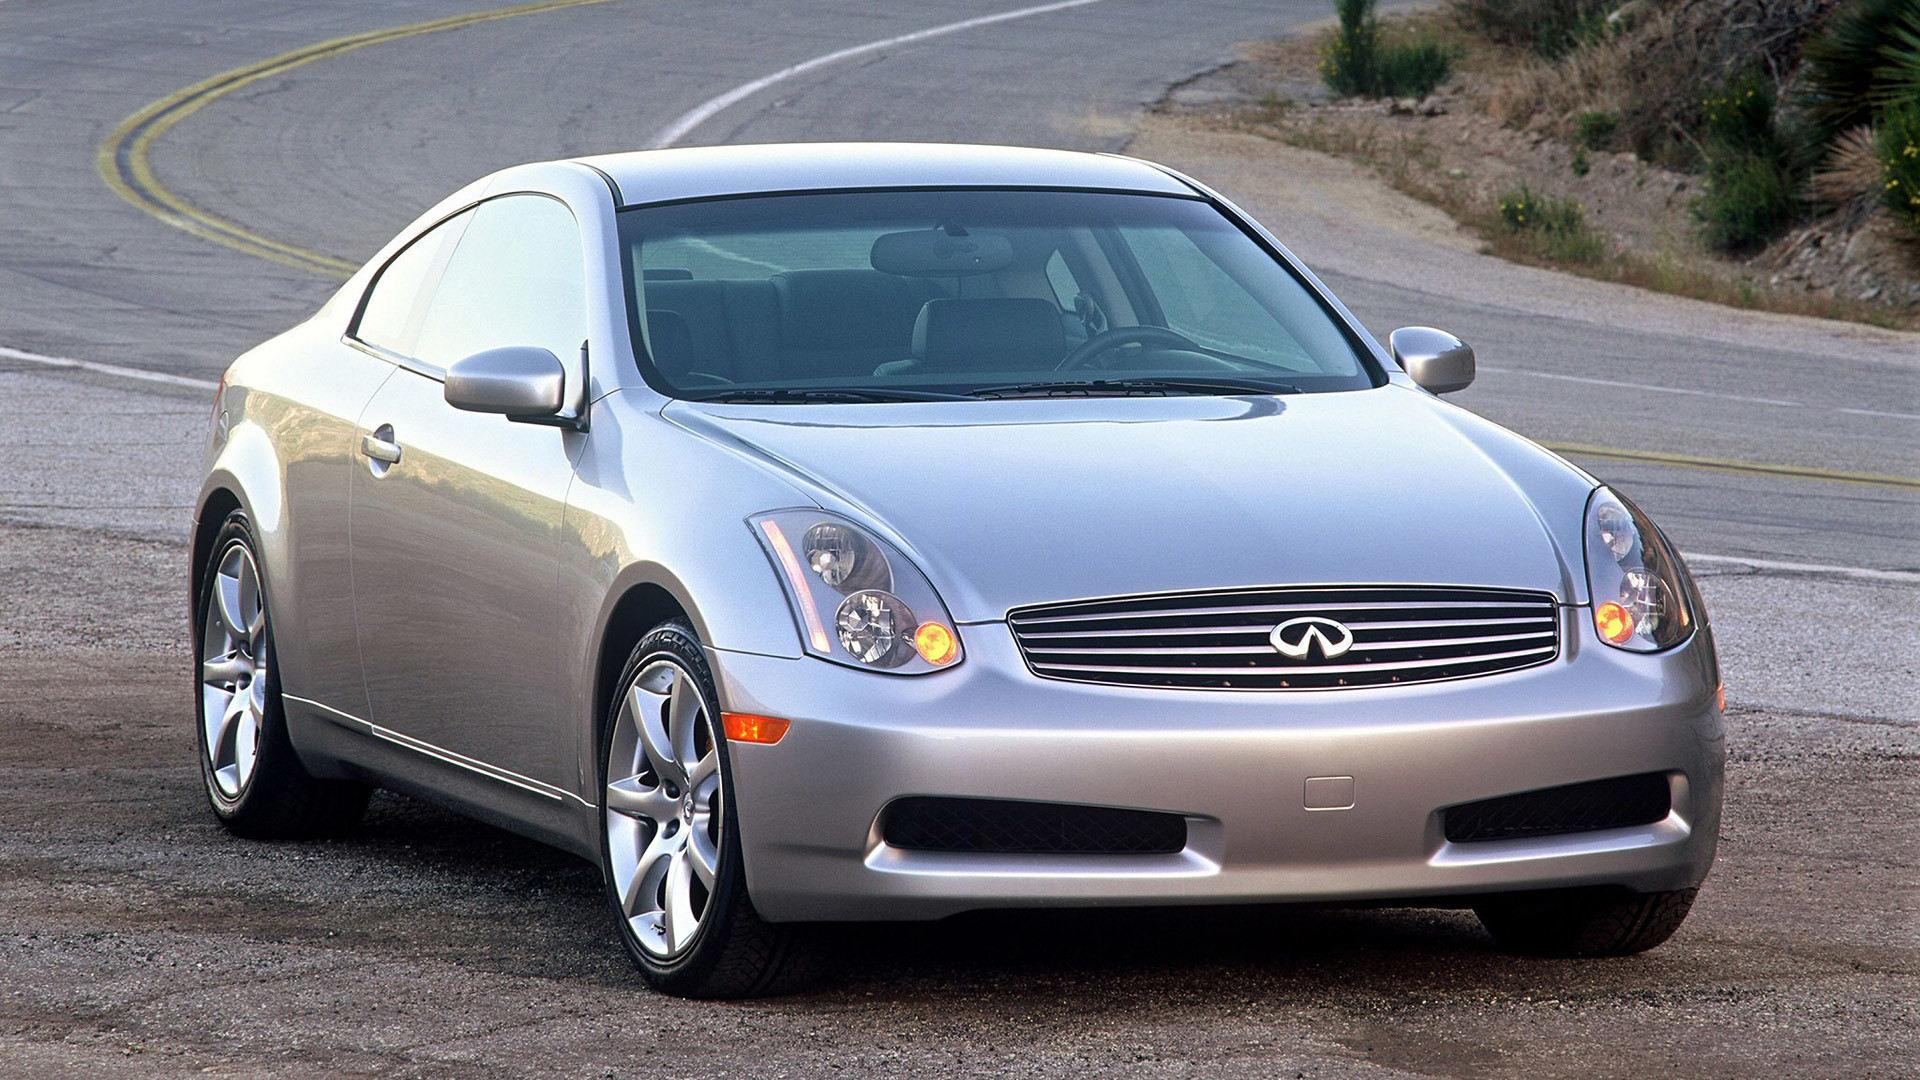 2002 Infiniti G35 Coupe picture